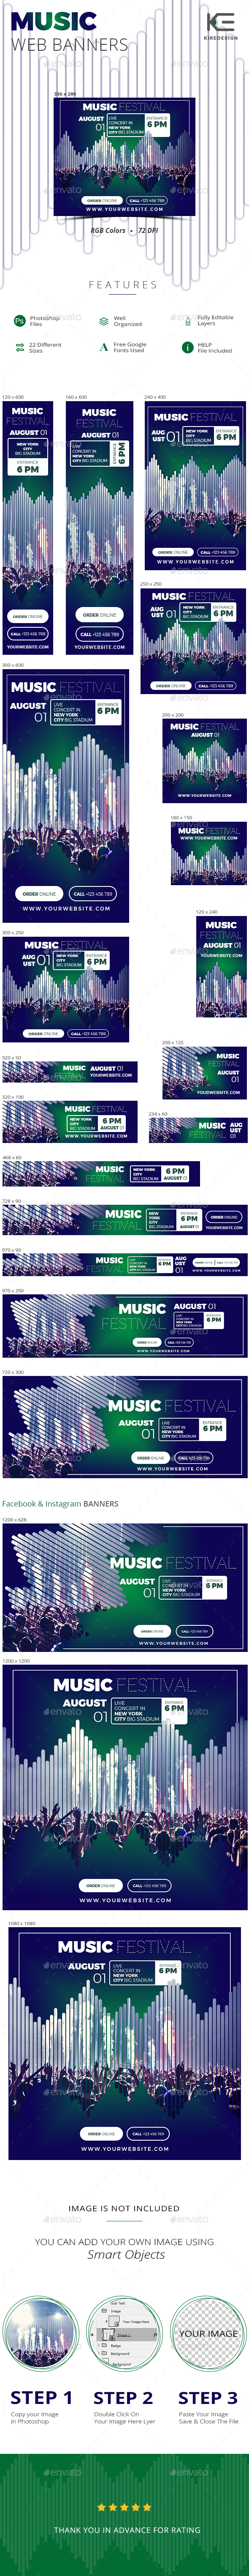 Music Web Banners - Banners & Ads Web Elements